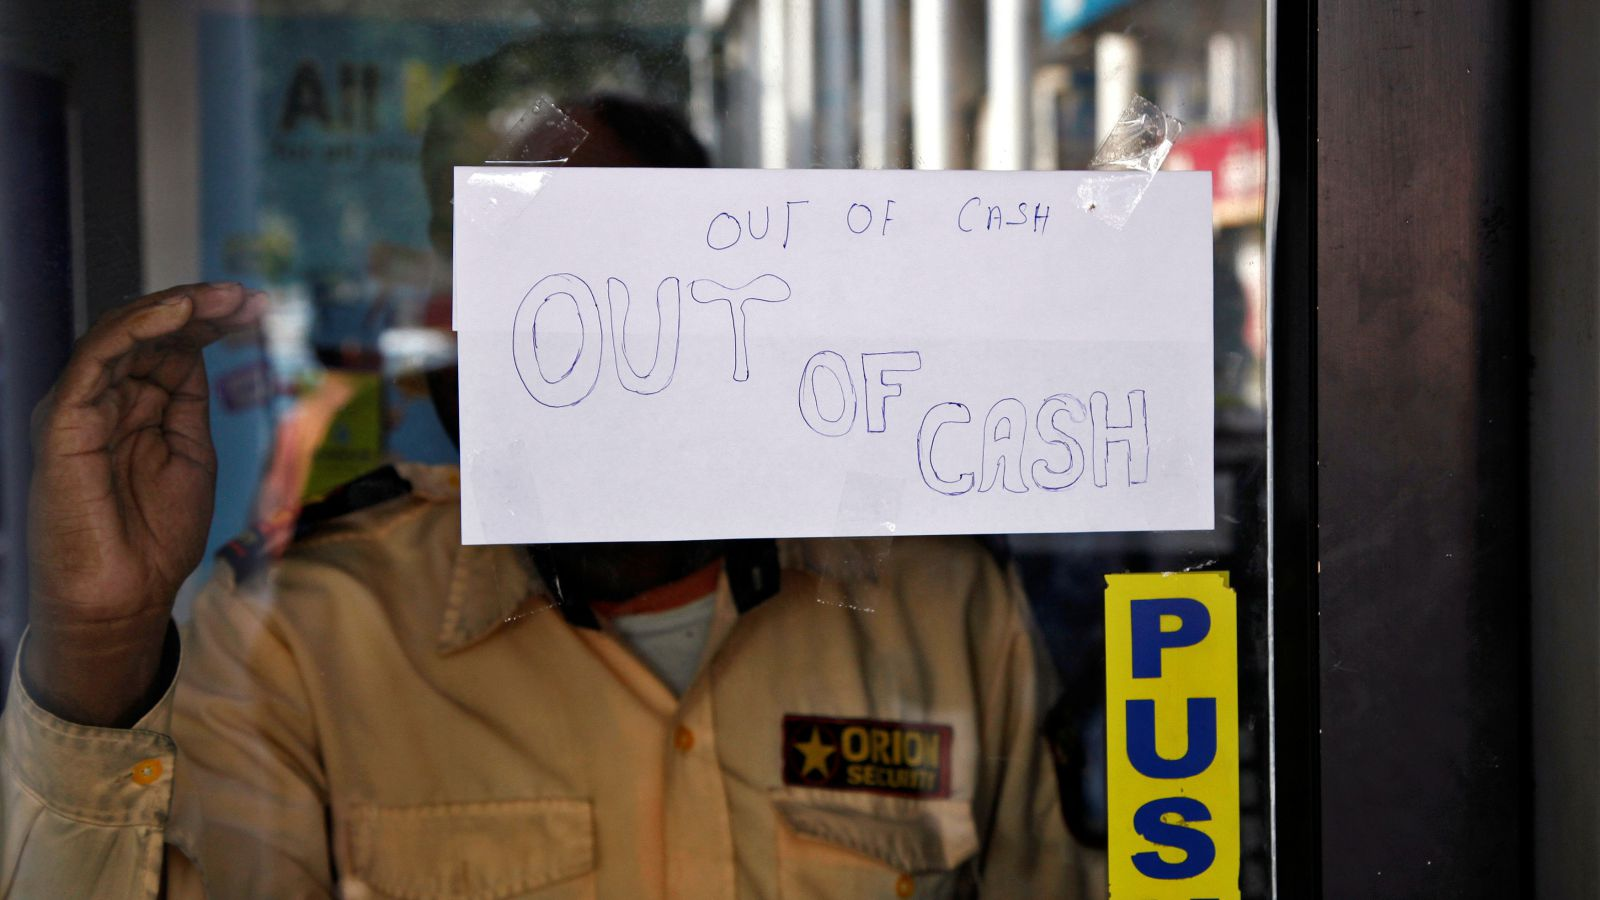 A notice is displayed on the gate of an automated teller machine (ATM) counter which is no longer dispensing cash in Chandigarh, India, November 21, 2016.